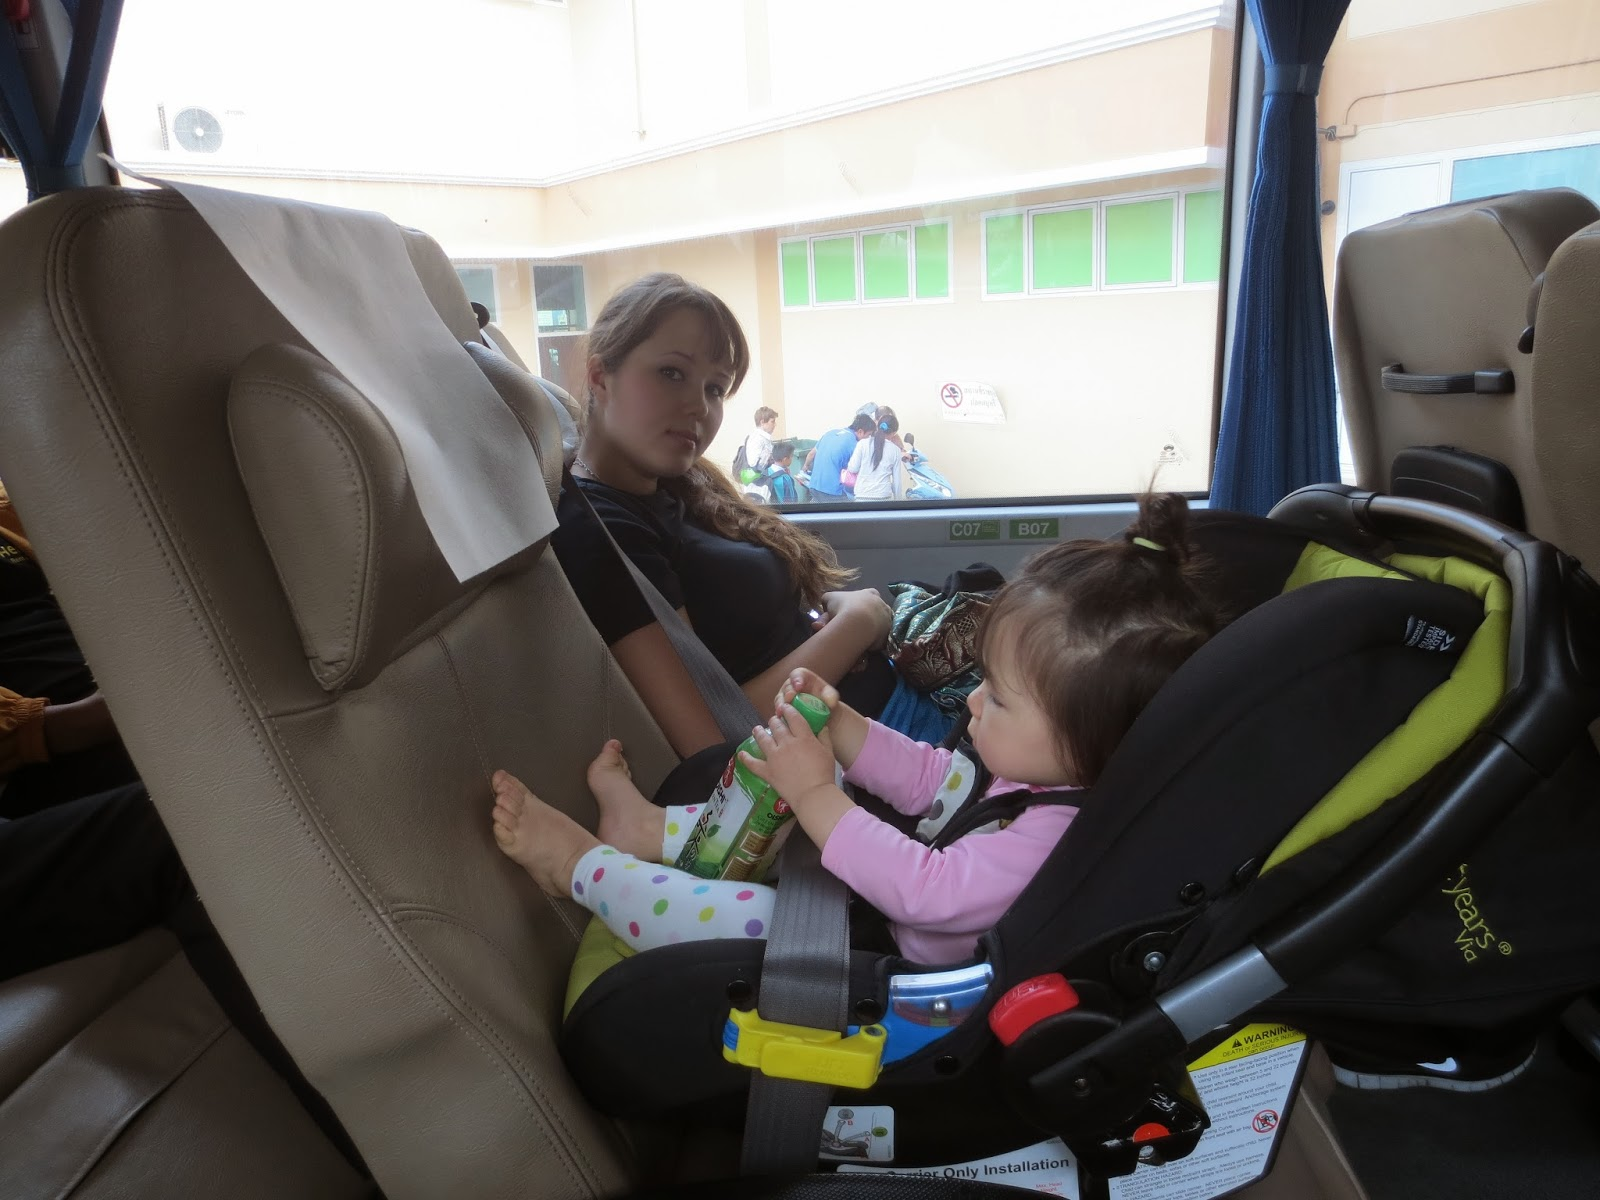 Car Seat On Airplane: Lap Child Diaries: Car Seat On The Plane